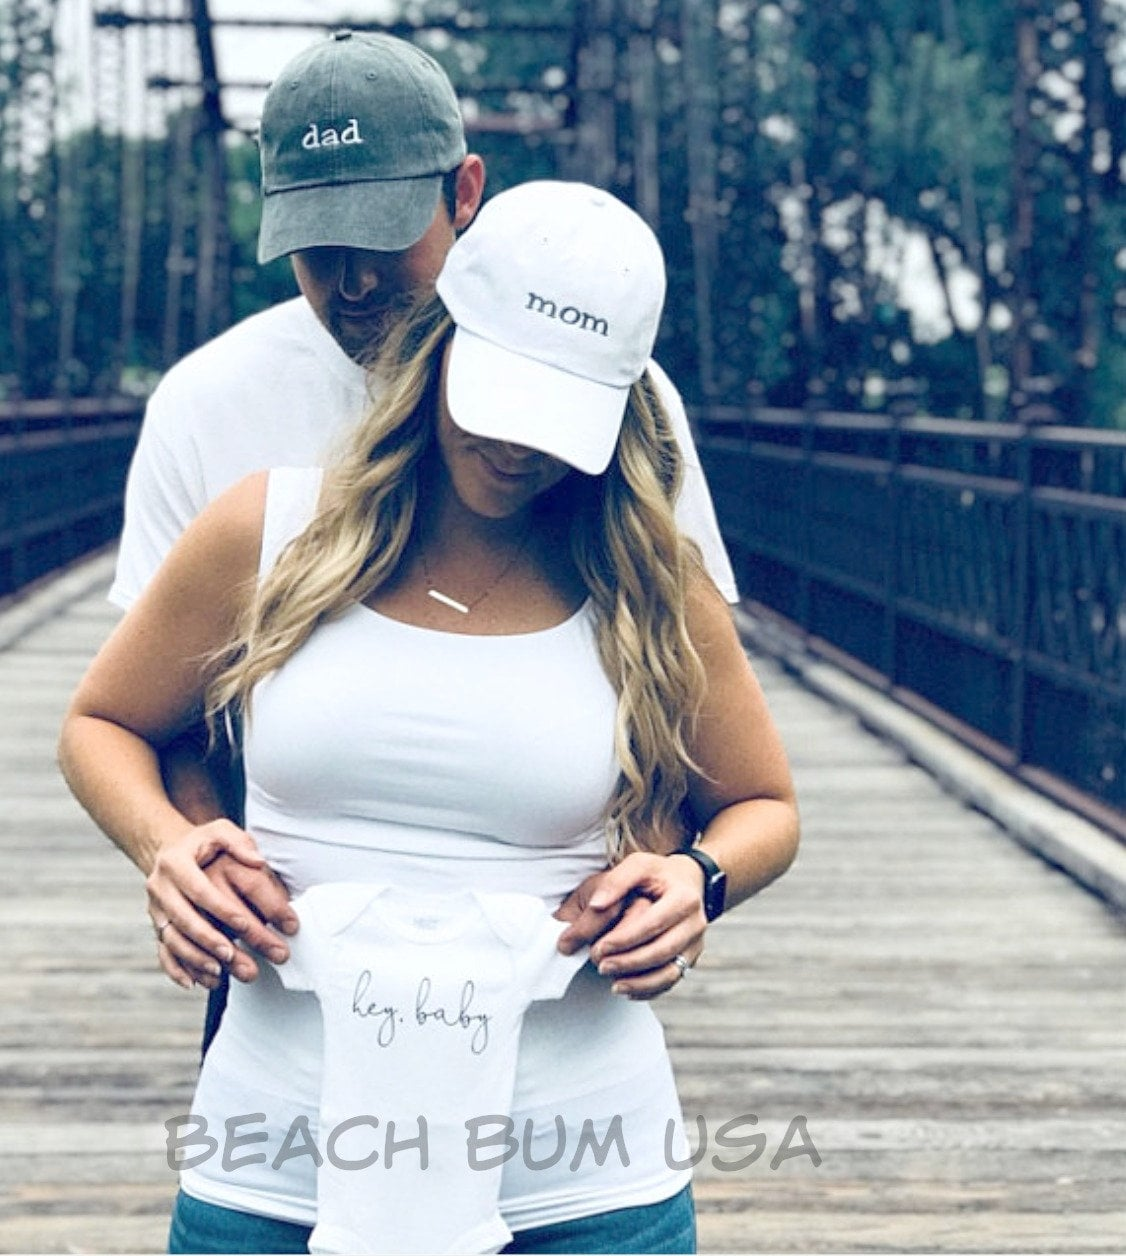 Pregnancy Announcement Hats mom and dad Hats Baby   Etsy